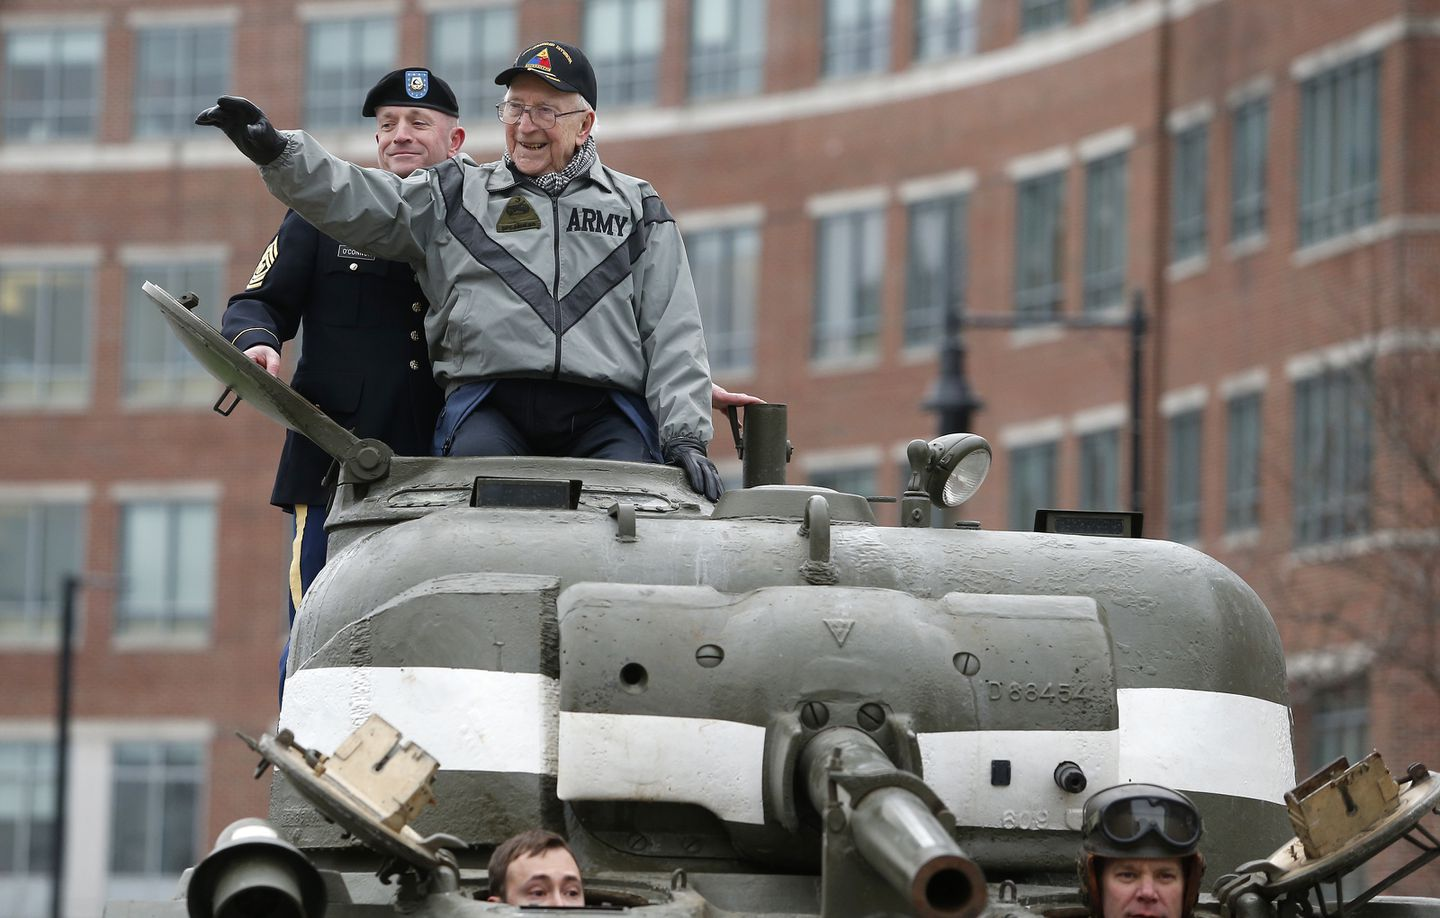 Clarence Smoyer waved as he rode in a Sherman tank to the Charlestown Navy Yard on Wednesday.